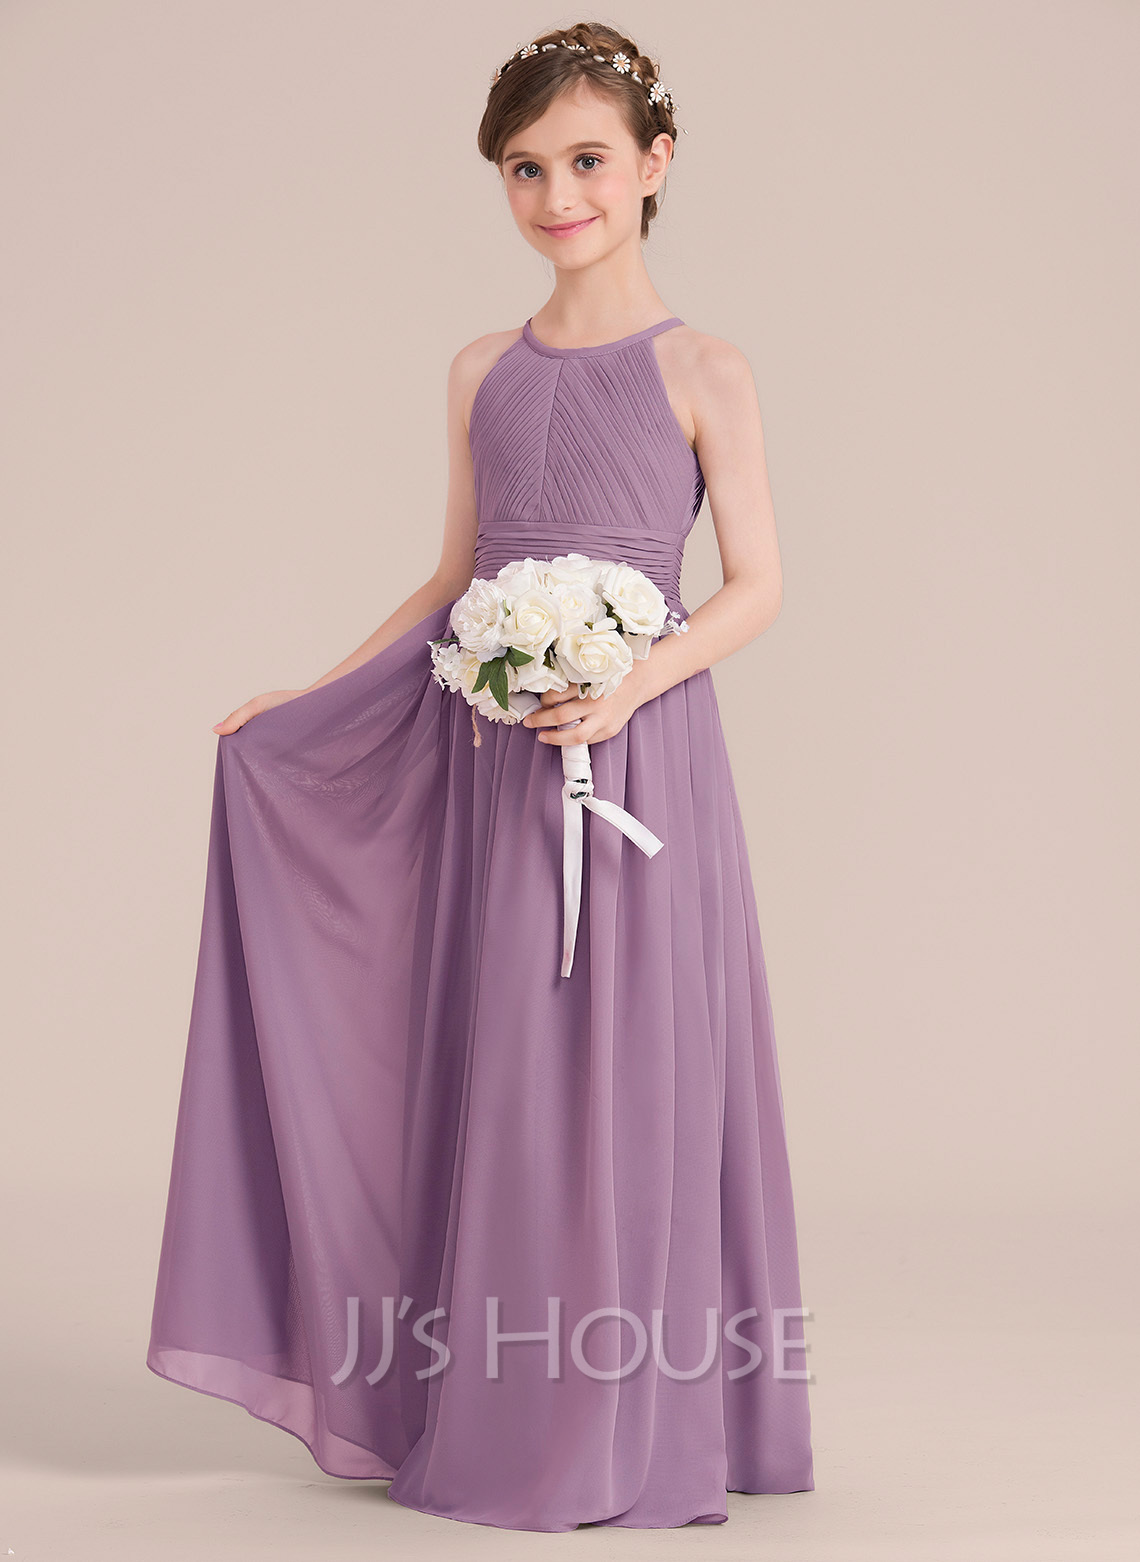 Custom made junior bridesmaid dresses jjshouse a lineprincess scoop neck floor length chiffon junior bridesmaid dress with ruffle ombrellifo Gallery